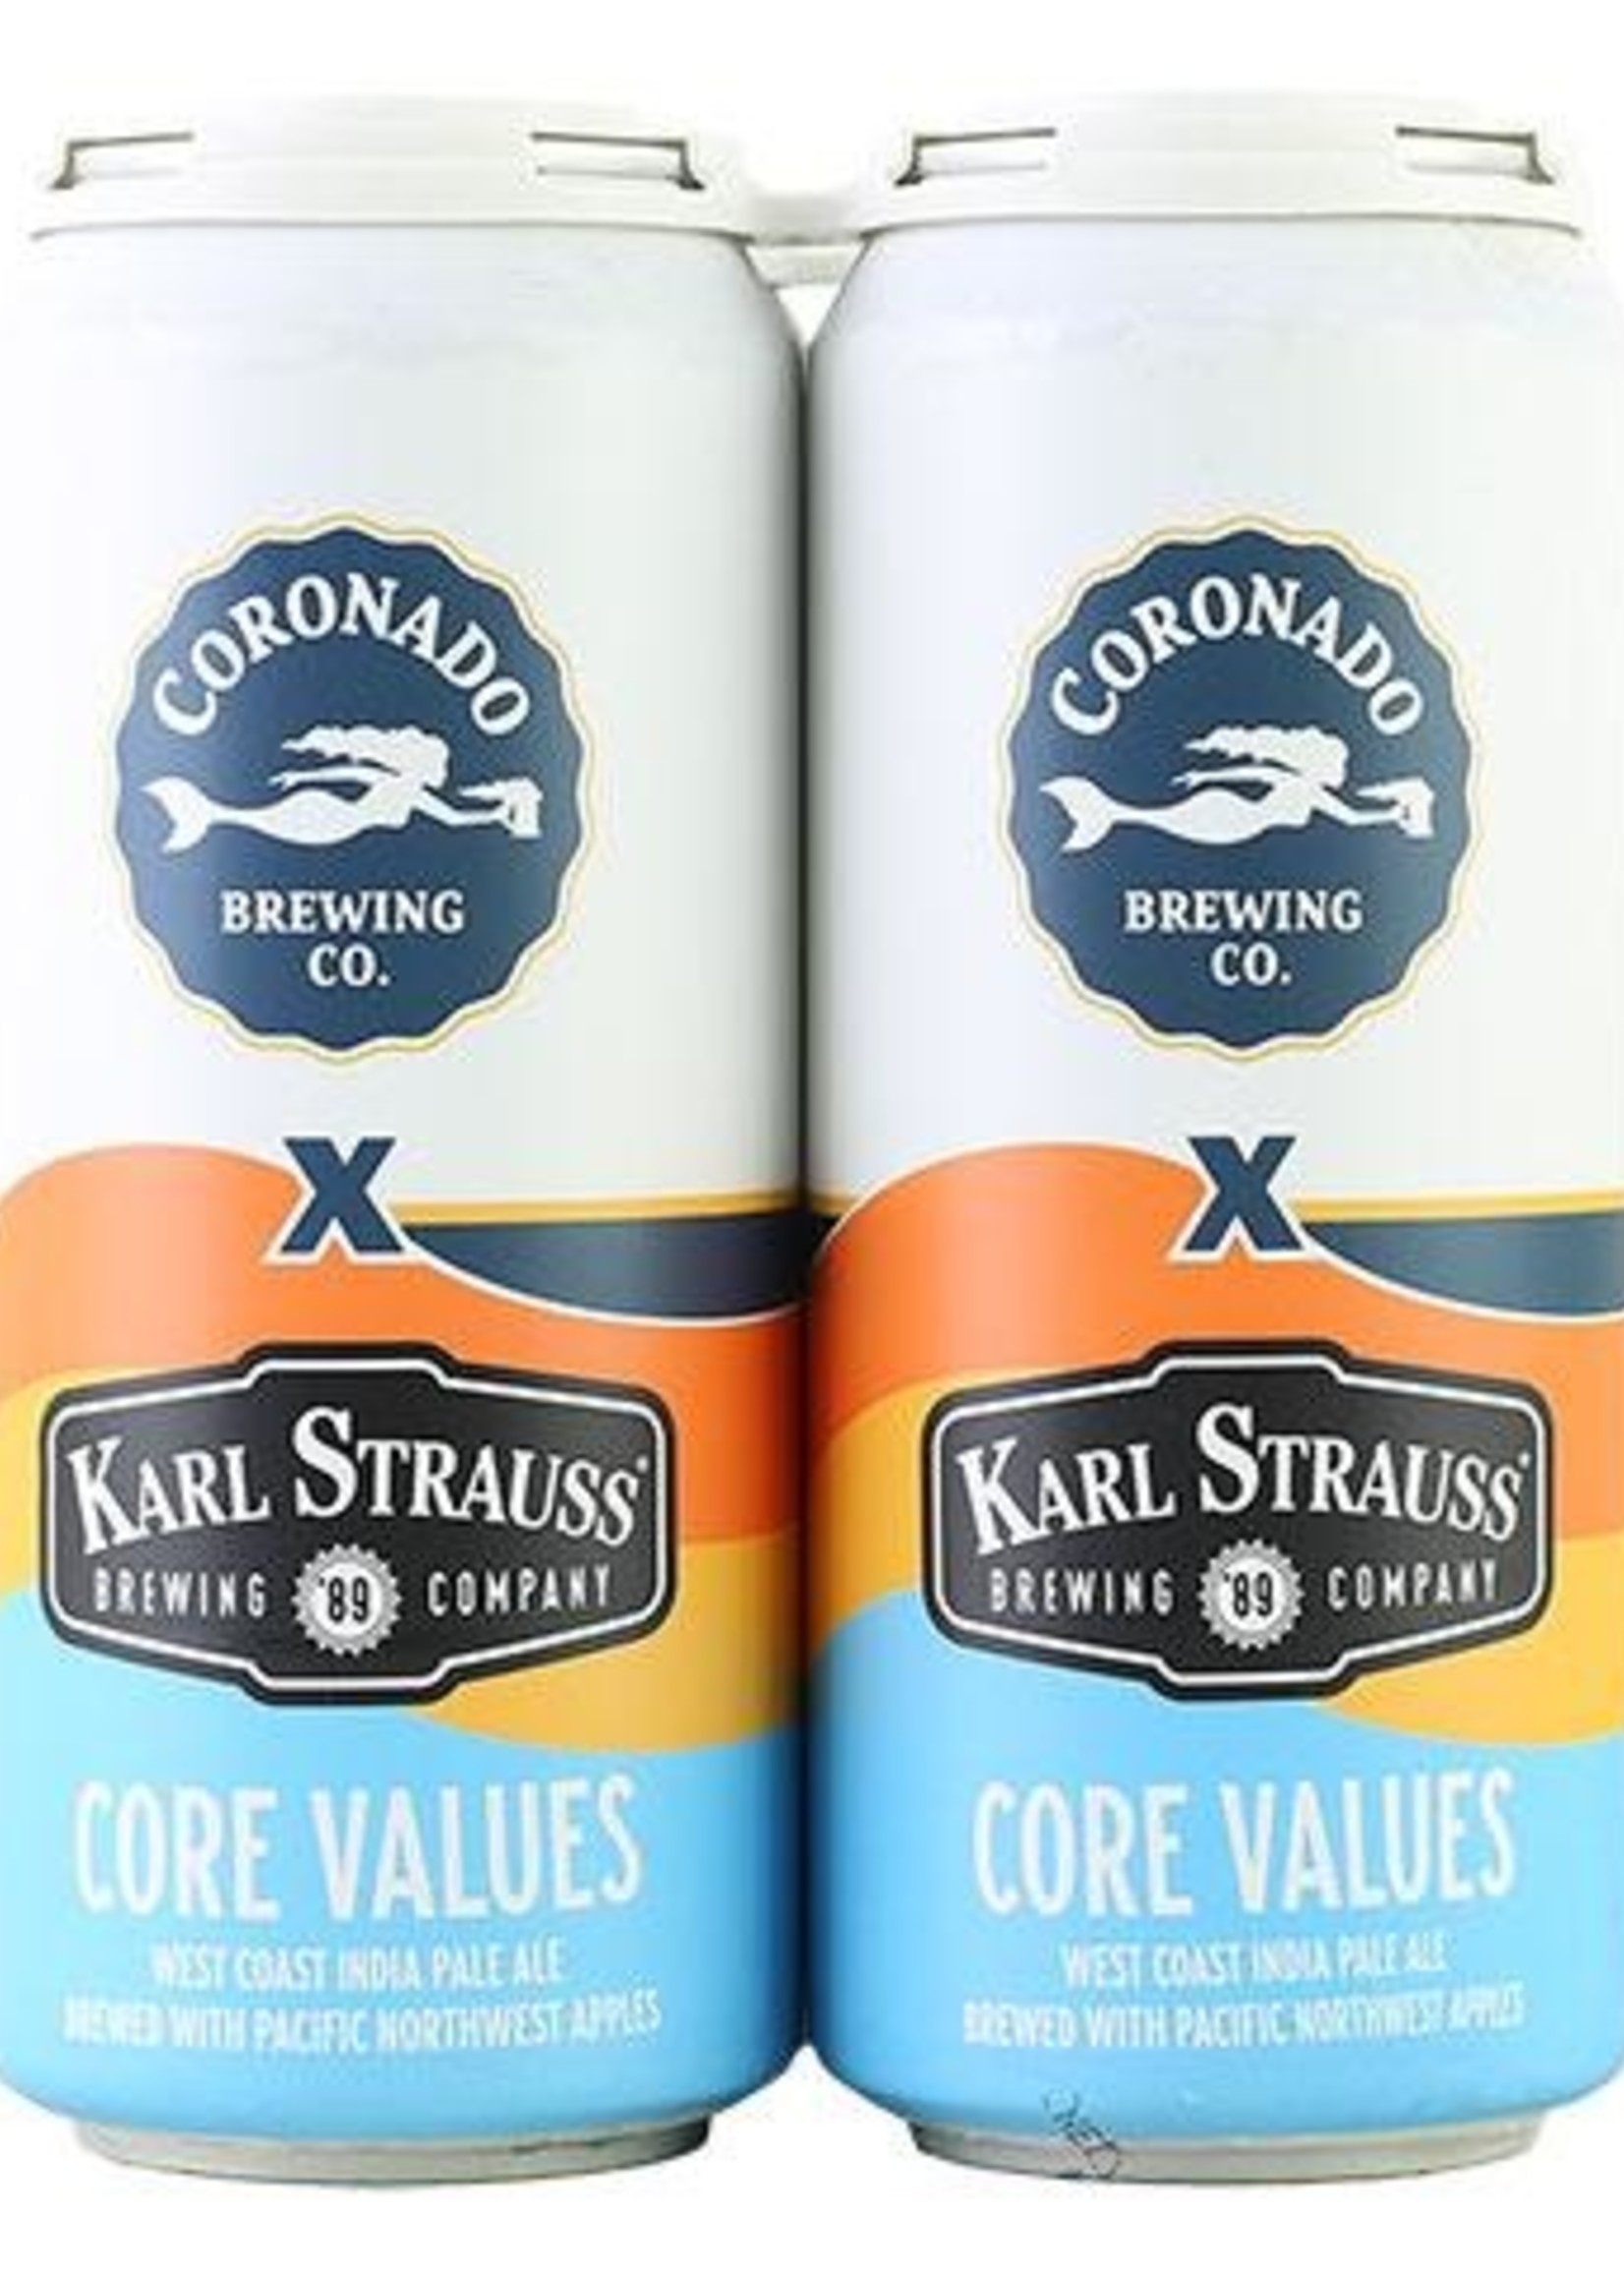 Coronado/Strauss Core Values IPA